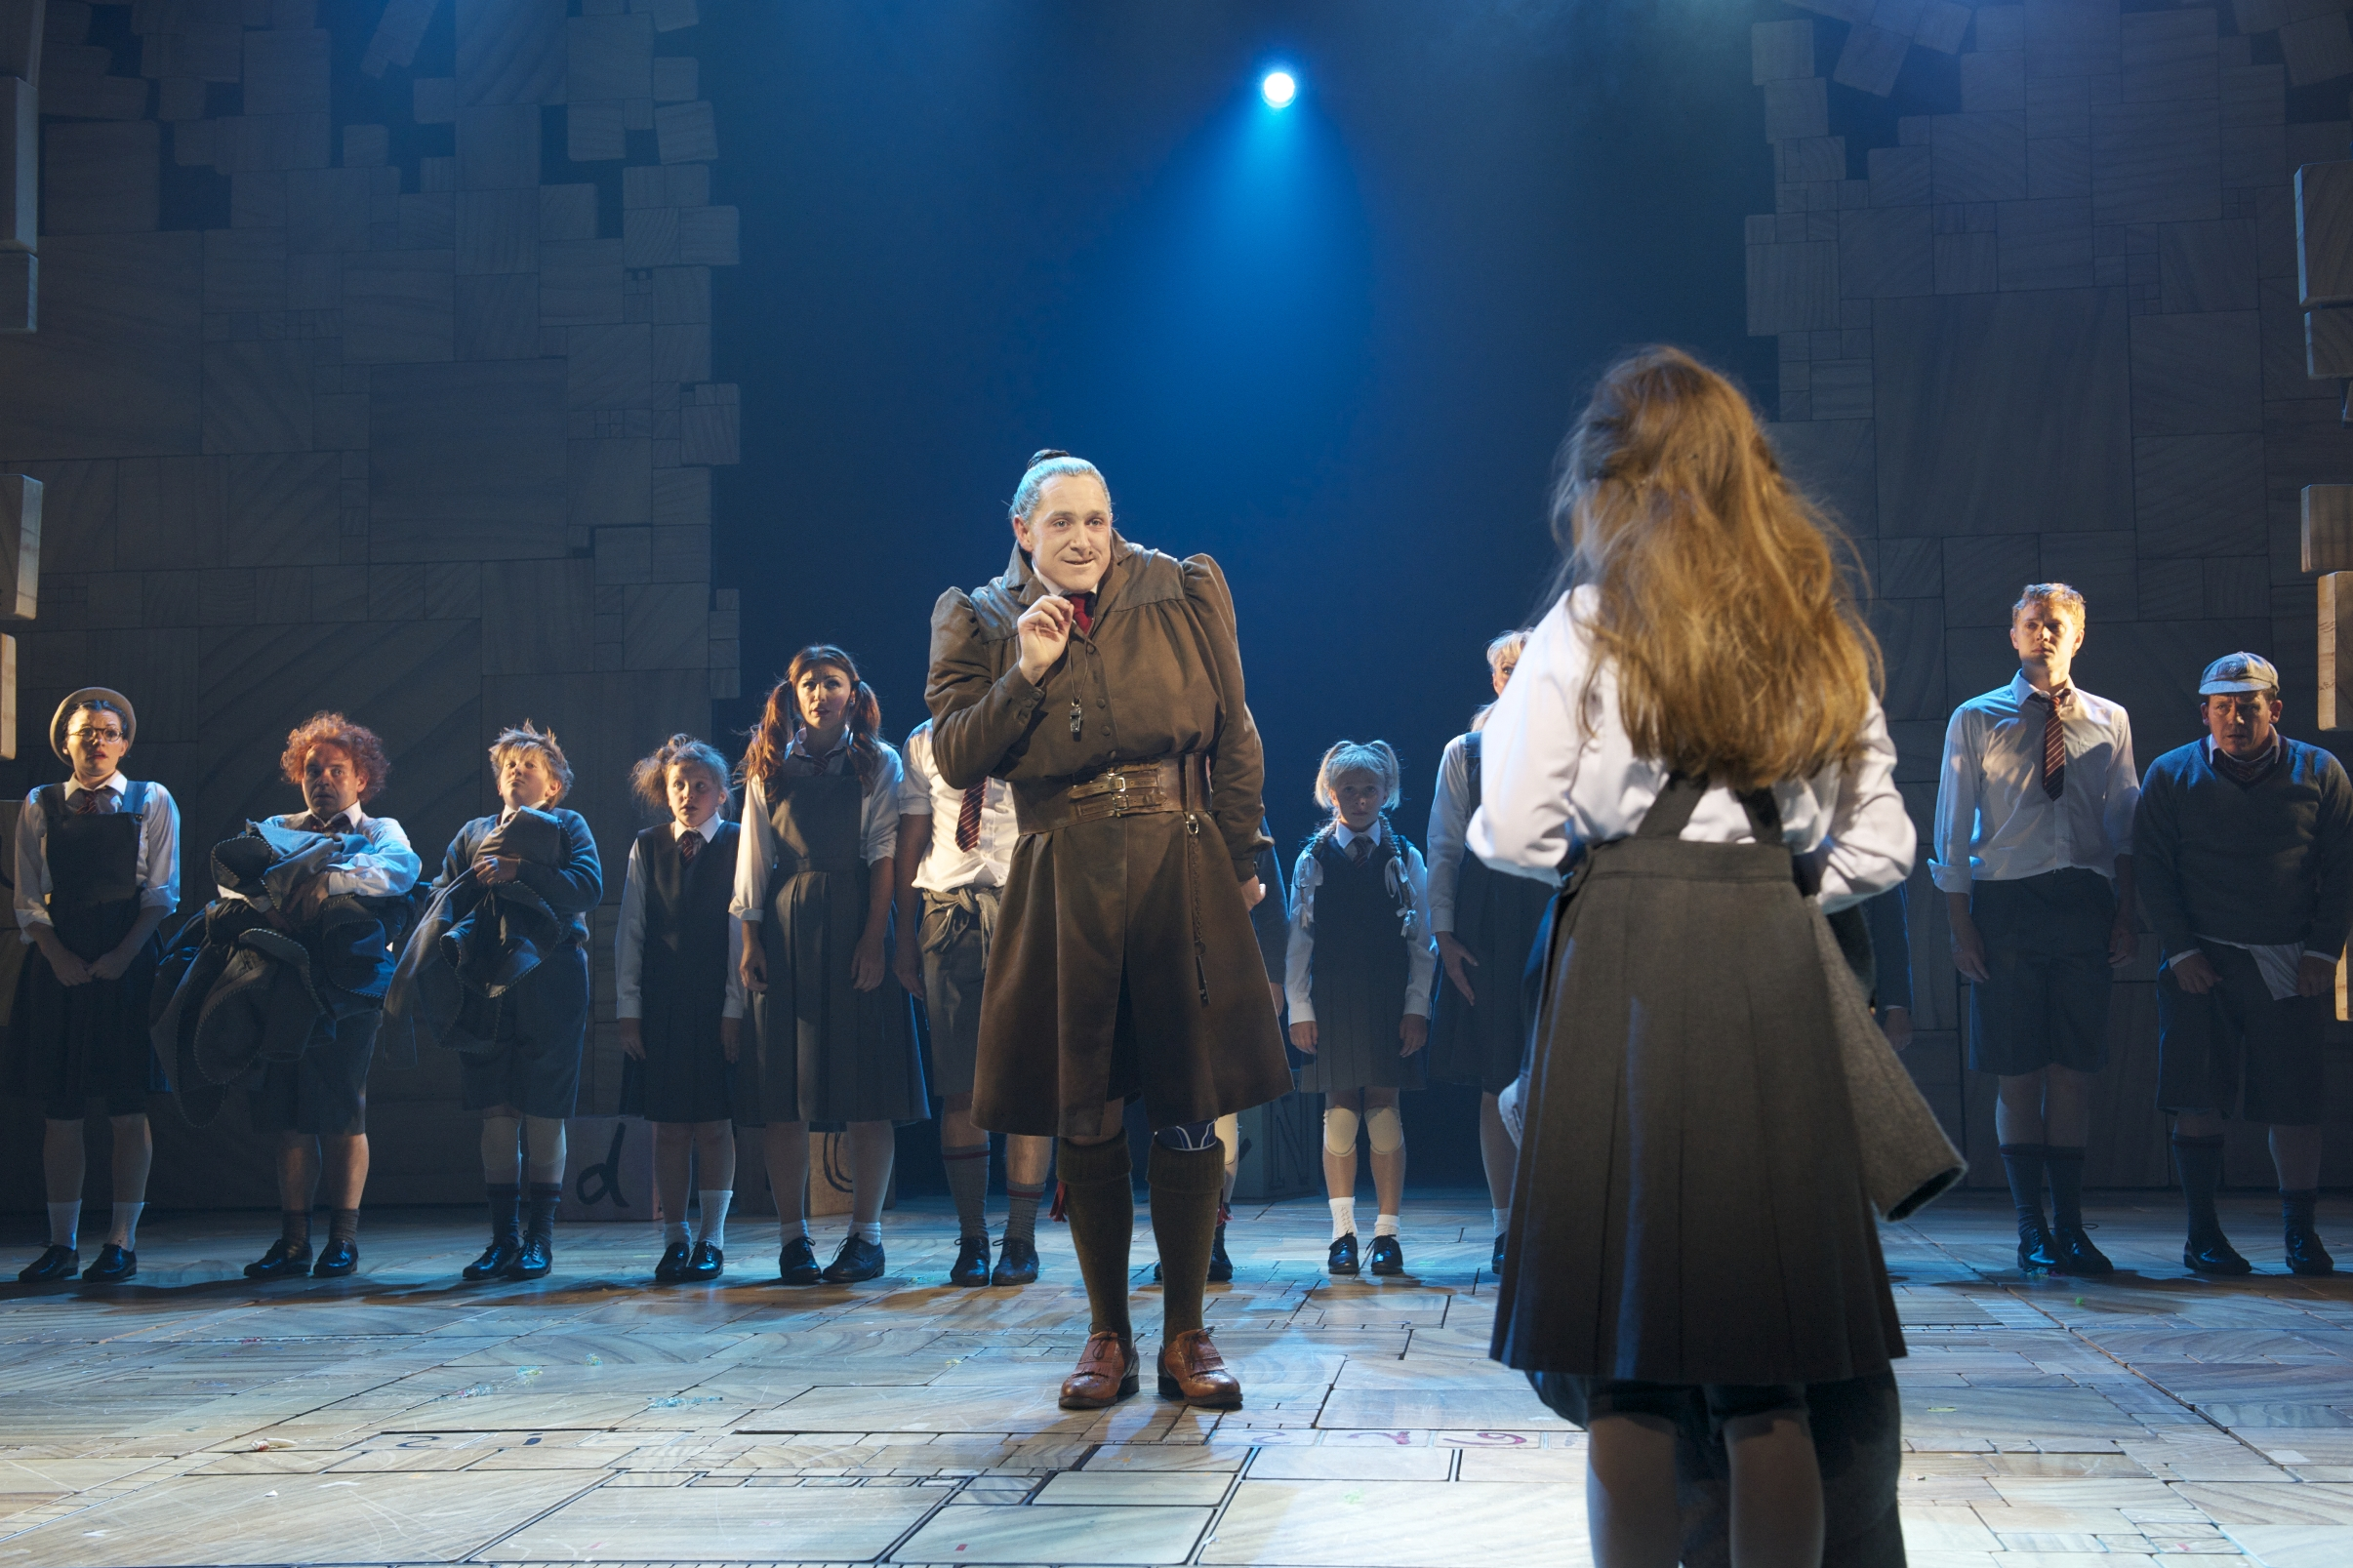 Bertie Carvel as Miss Trunchbull in the RSC Production of Roald Dahl's Matilda The Musical. Photo by Manuel Harlan. 11.2-0500